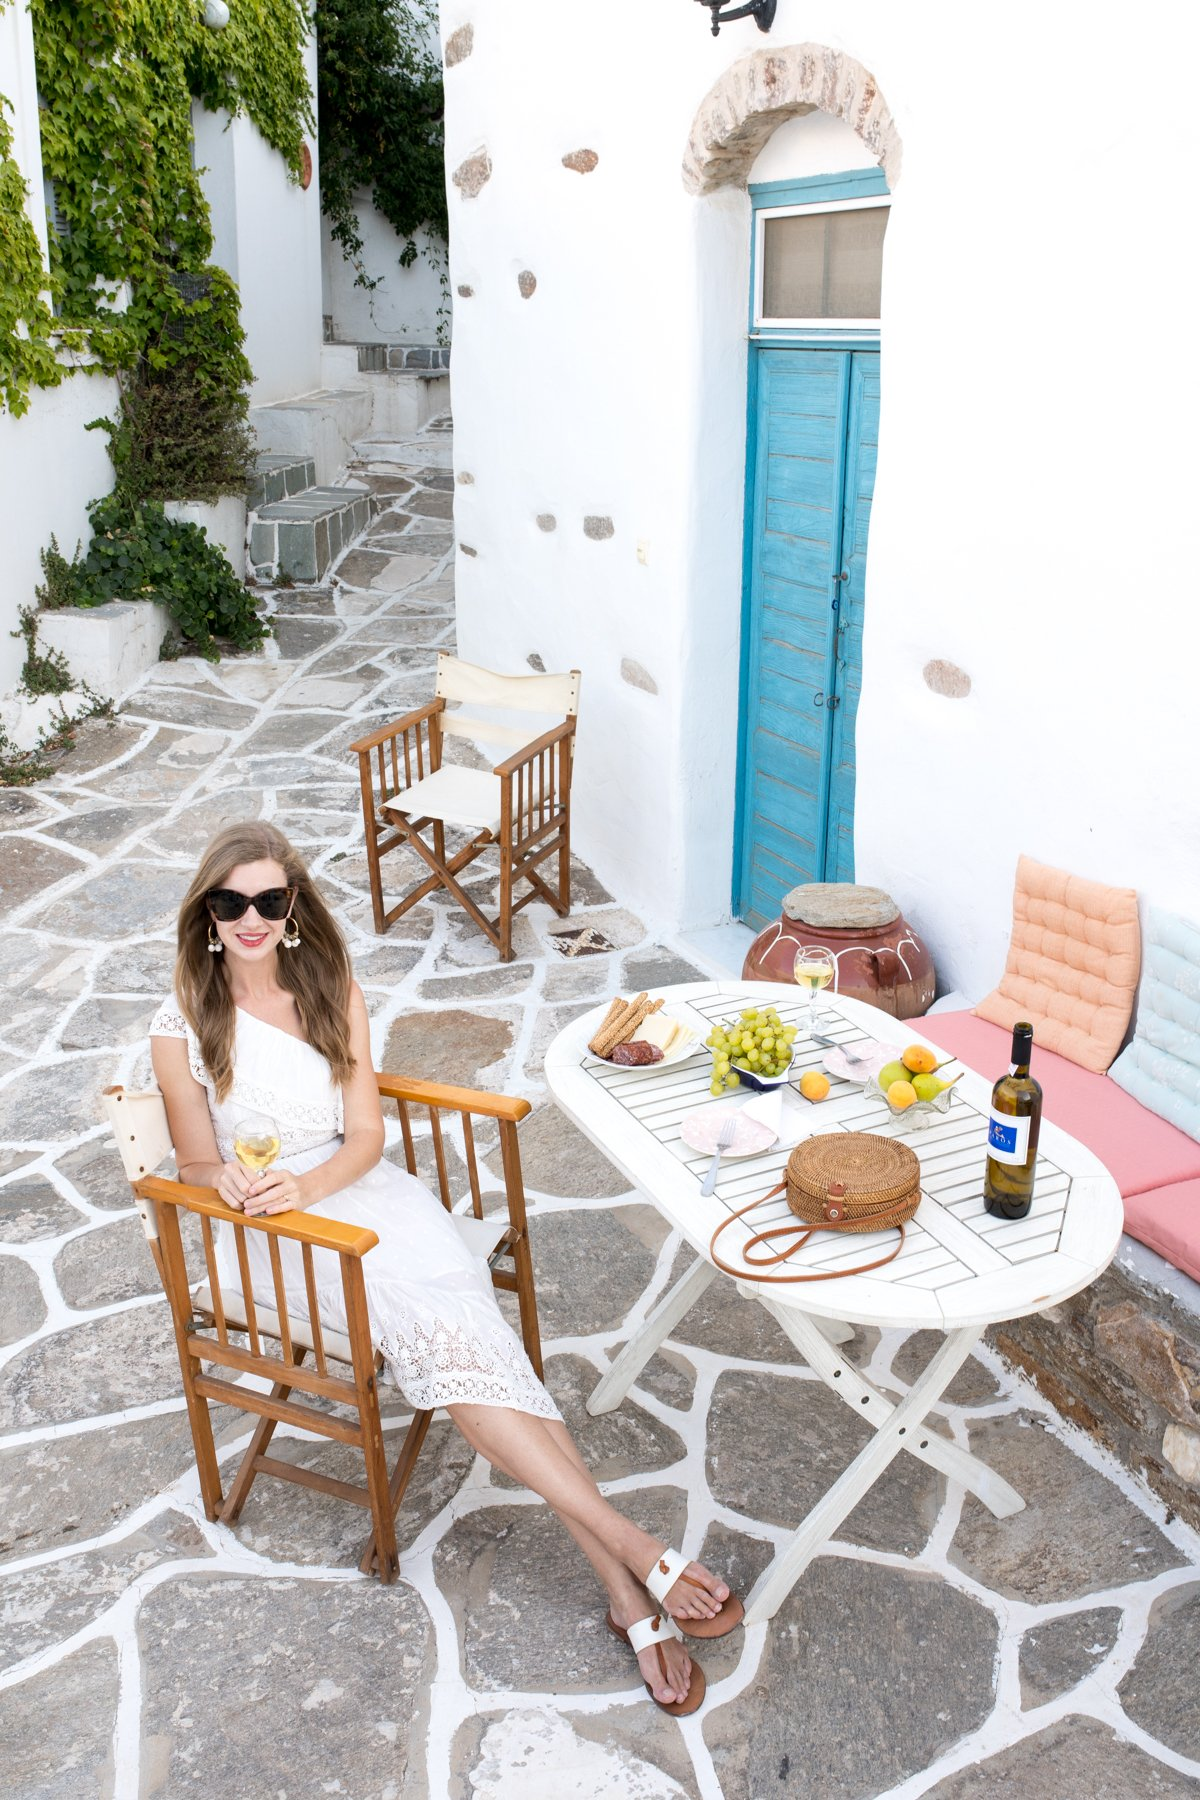 Stacie Flinner Travel Guide Paros Greece-2.jpg